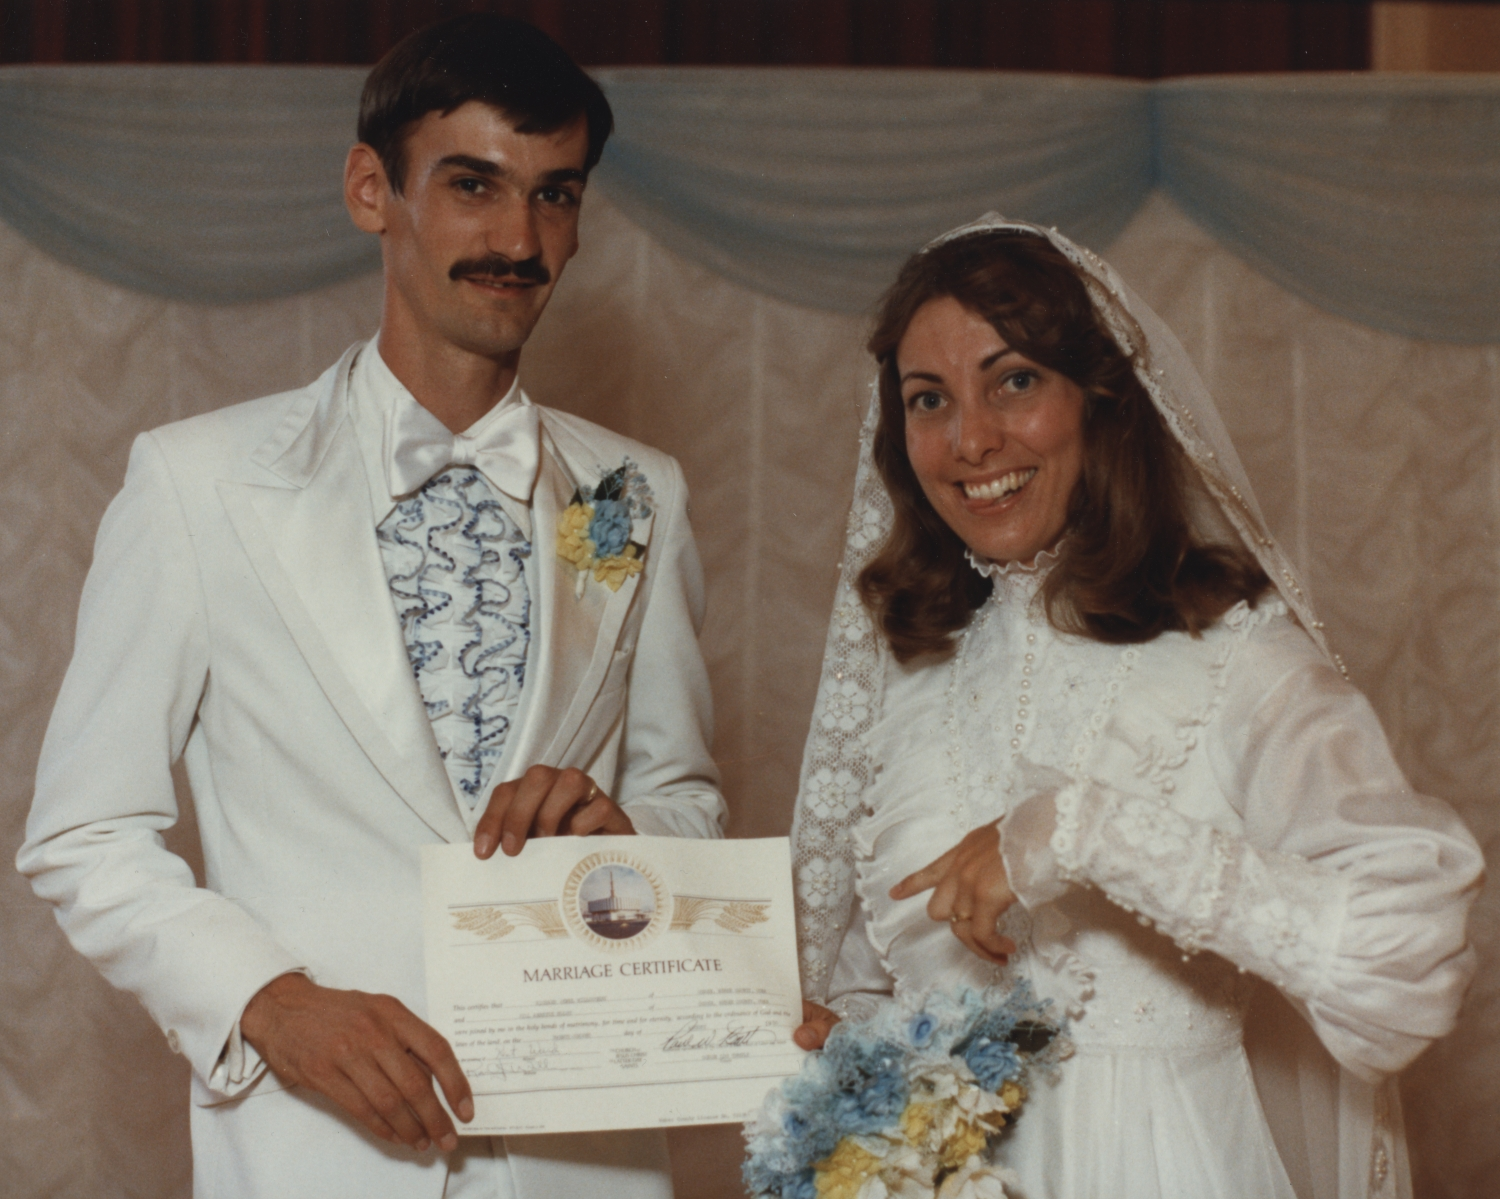 Rick and Jill marriage certificate